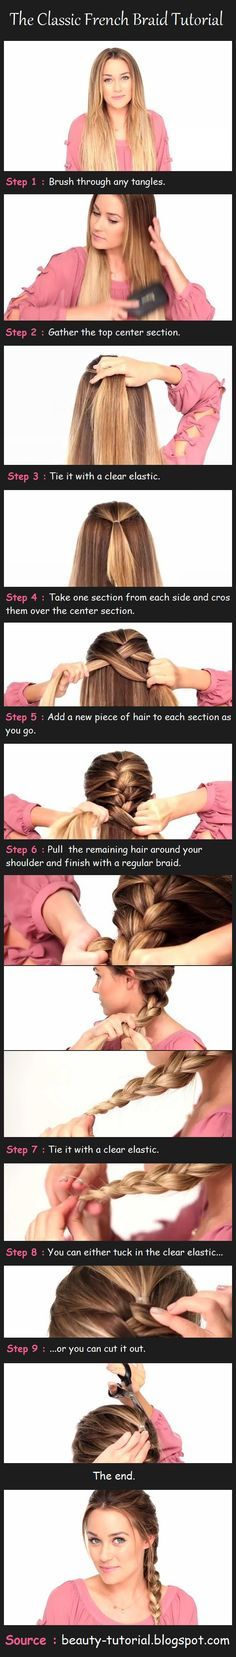 It's about time I learned how to french braid:  The Classic French Braid Tutorial